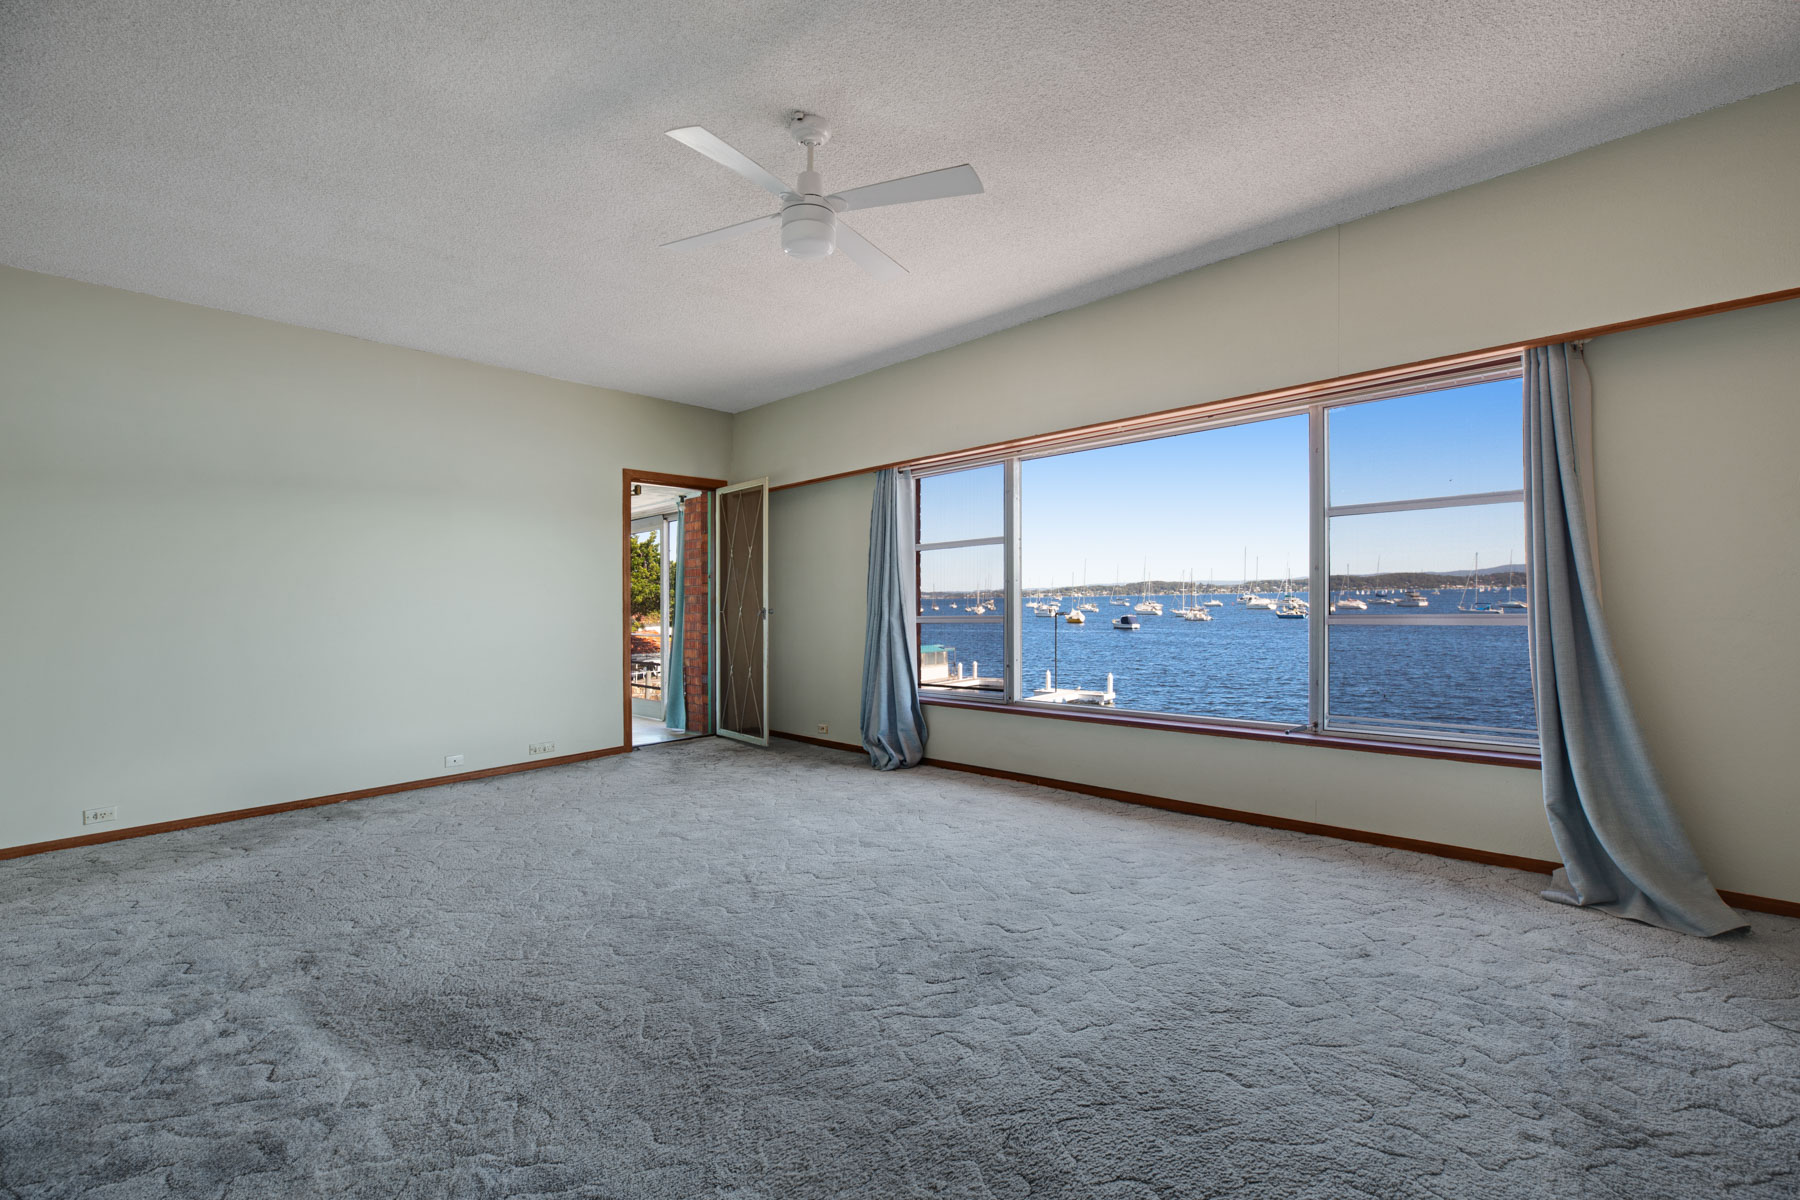 Lounge room view 2 of 13 Walter St Belmont